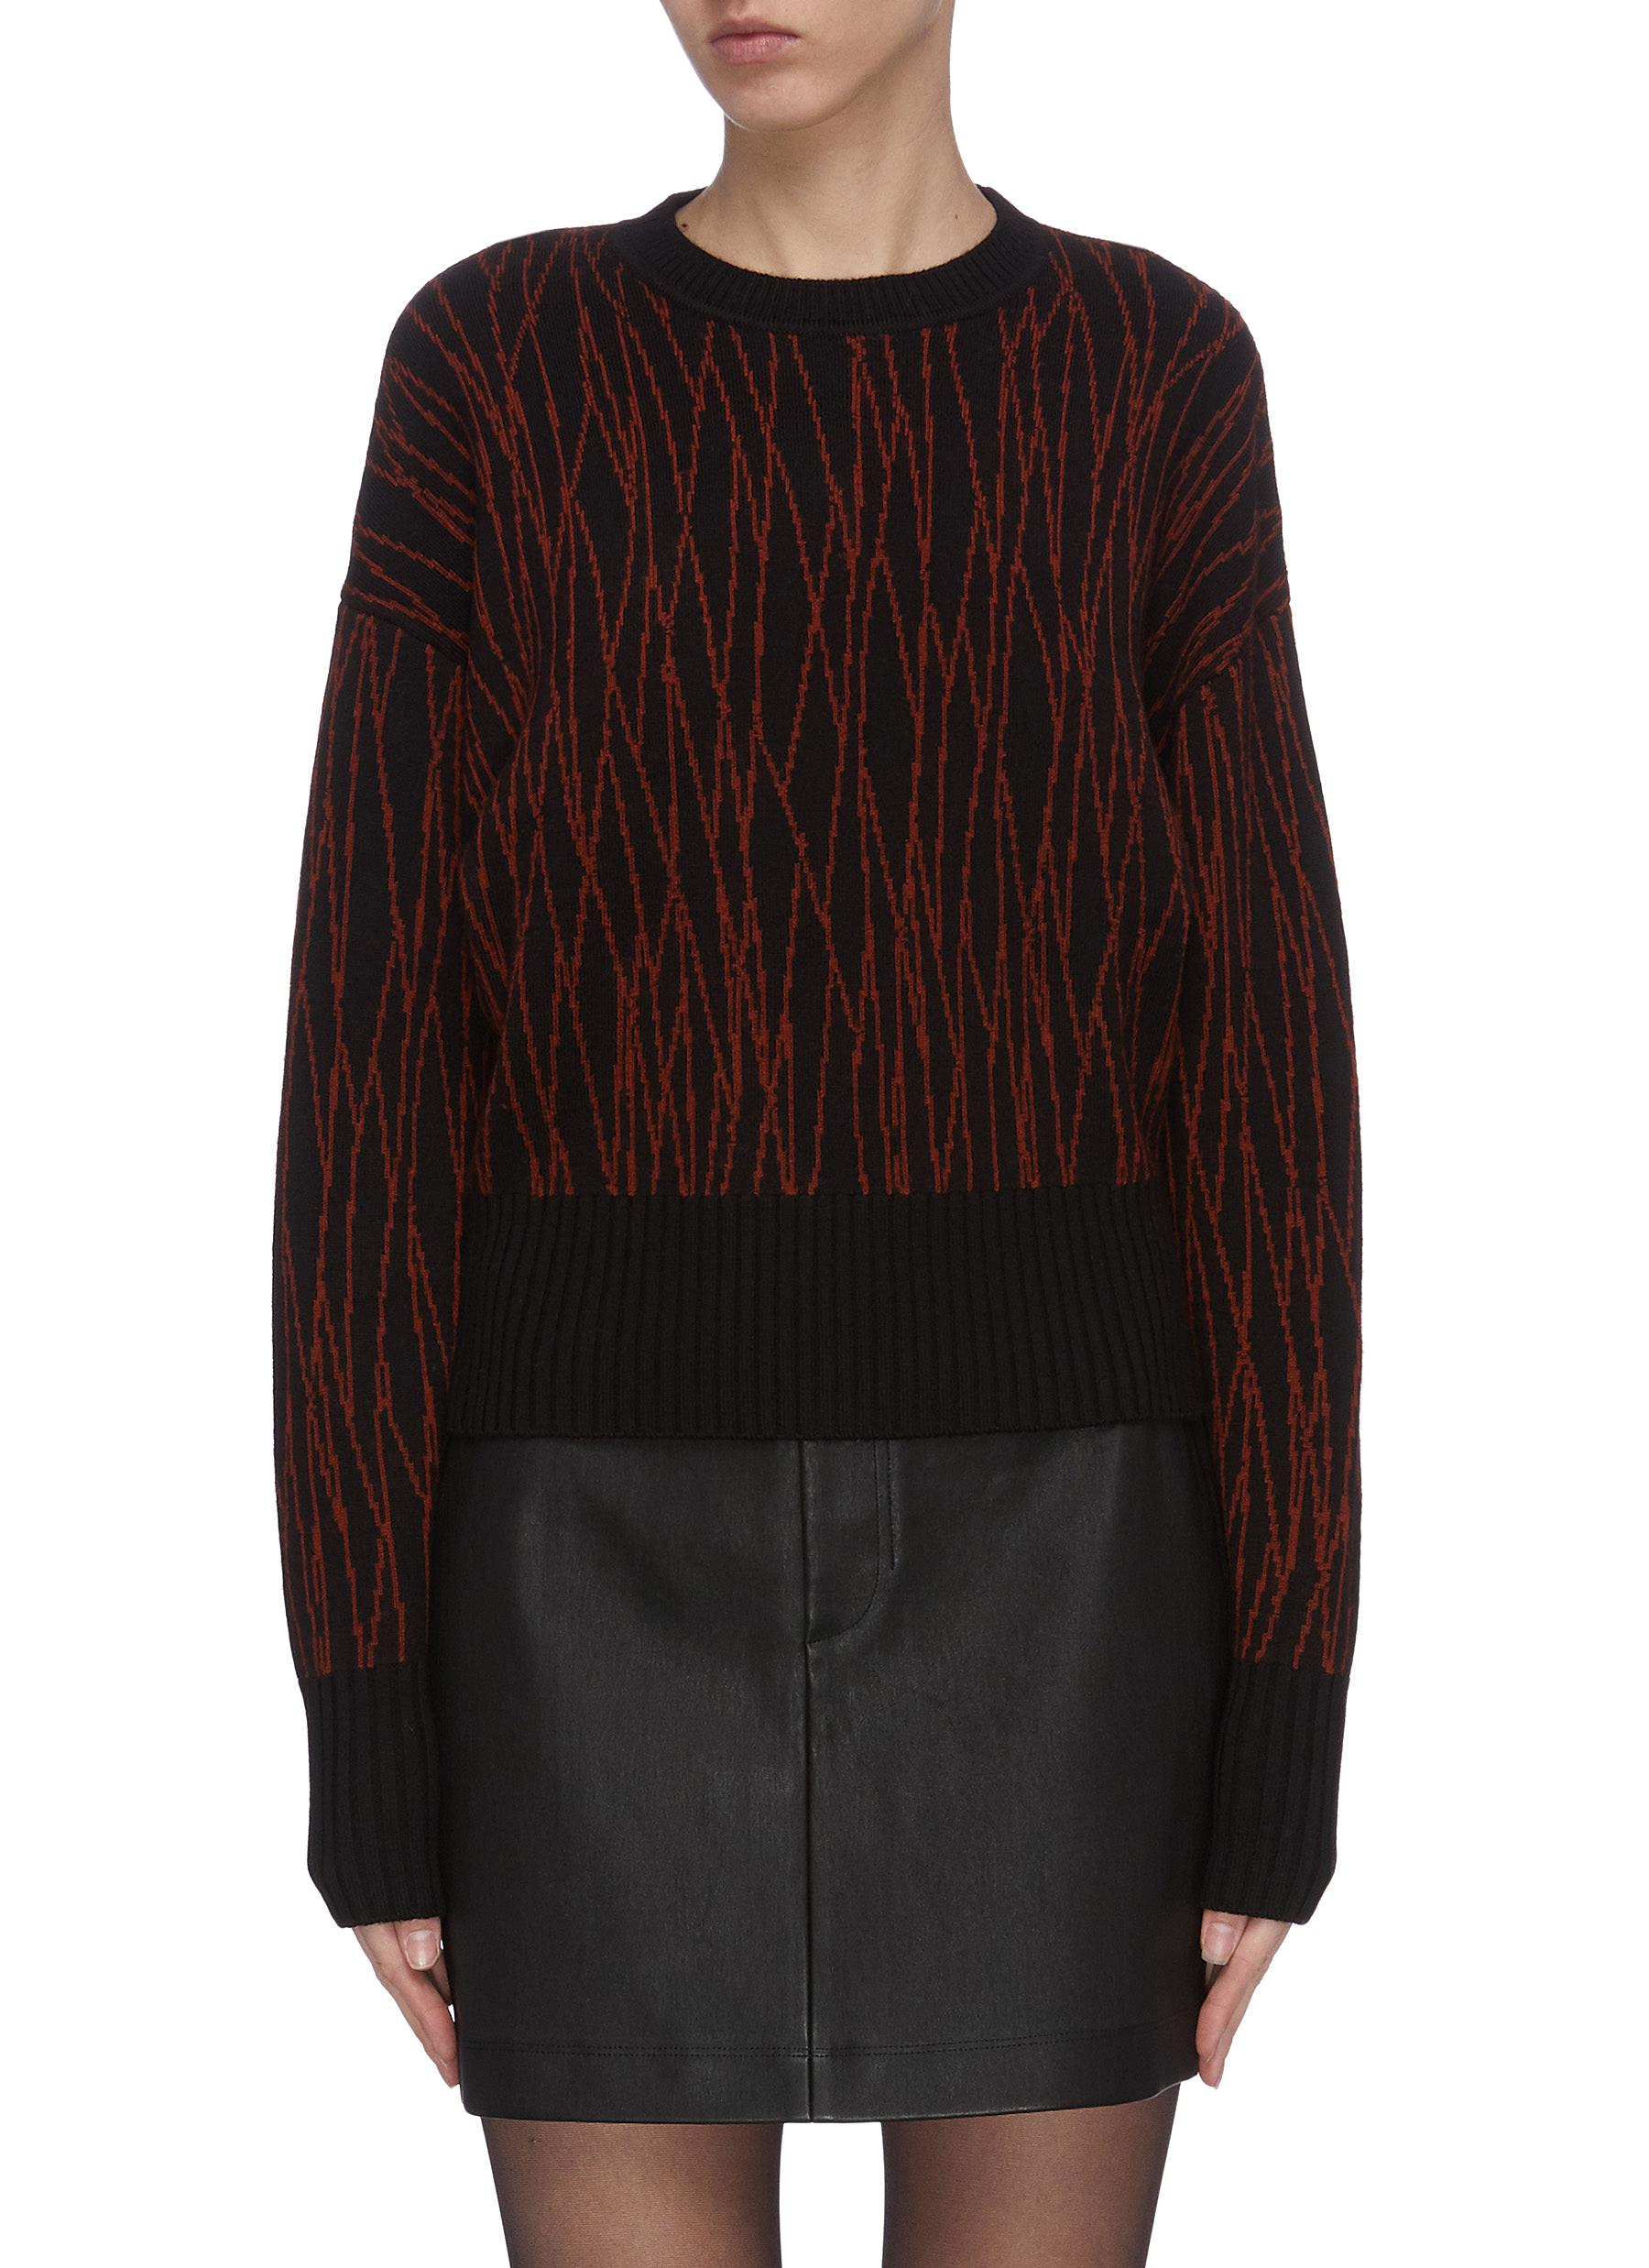 Buy Equipment Knitwear 'Betia' abstract pattern wool knit sweater